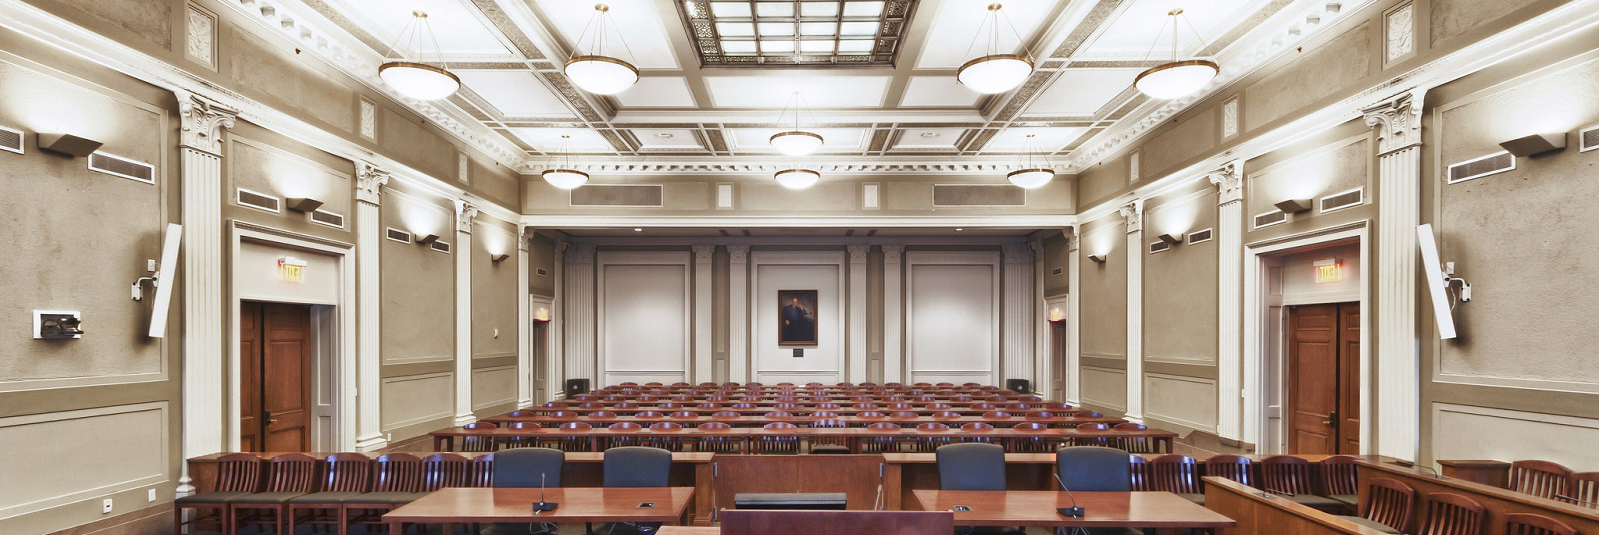 Historic courtroom